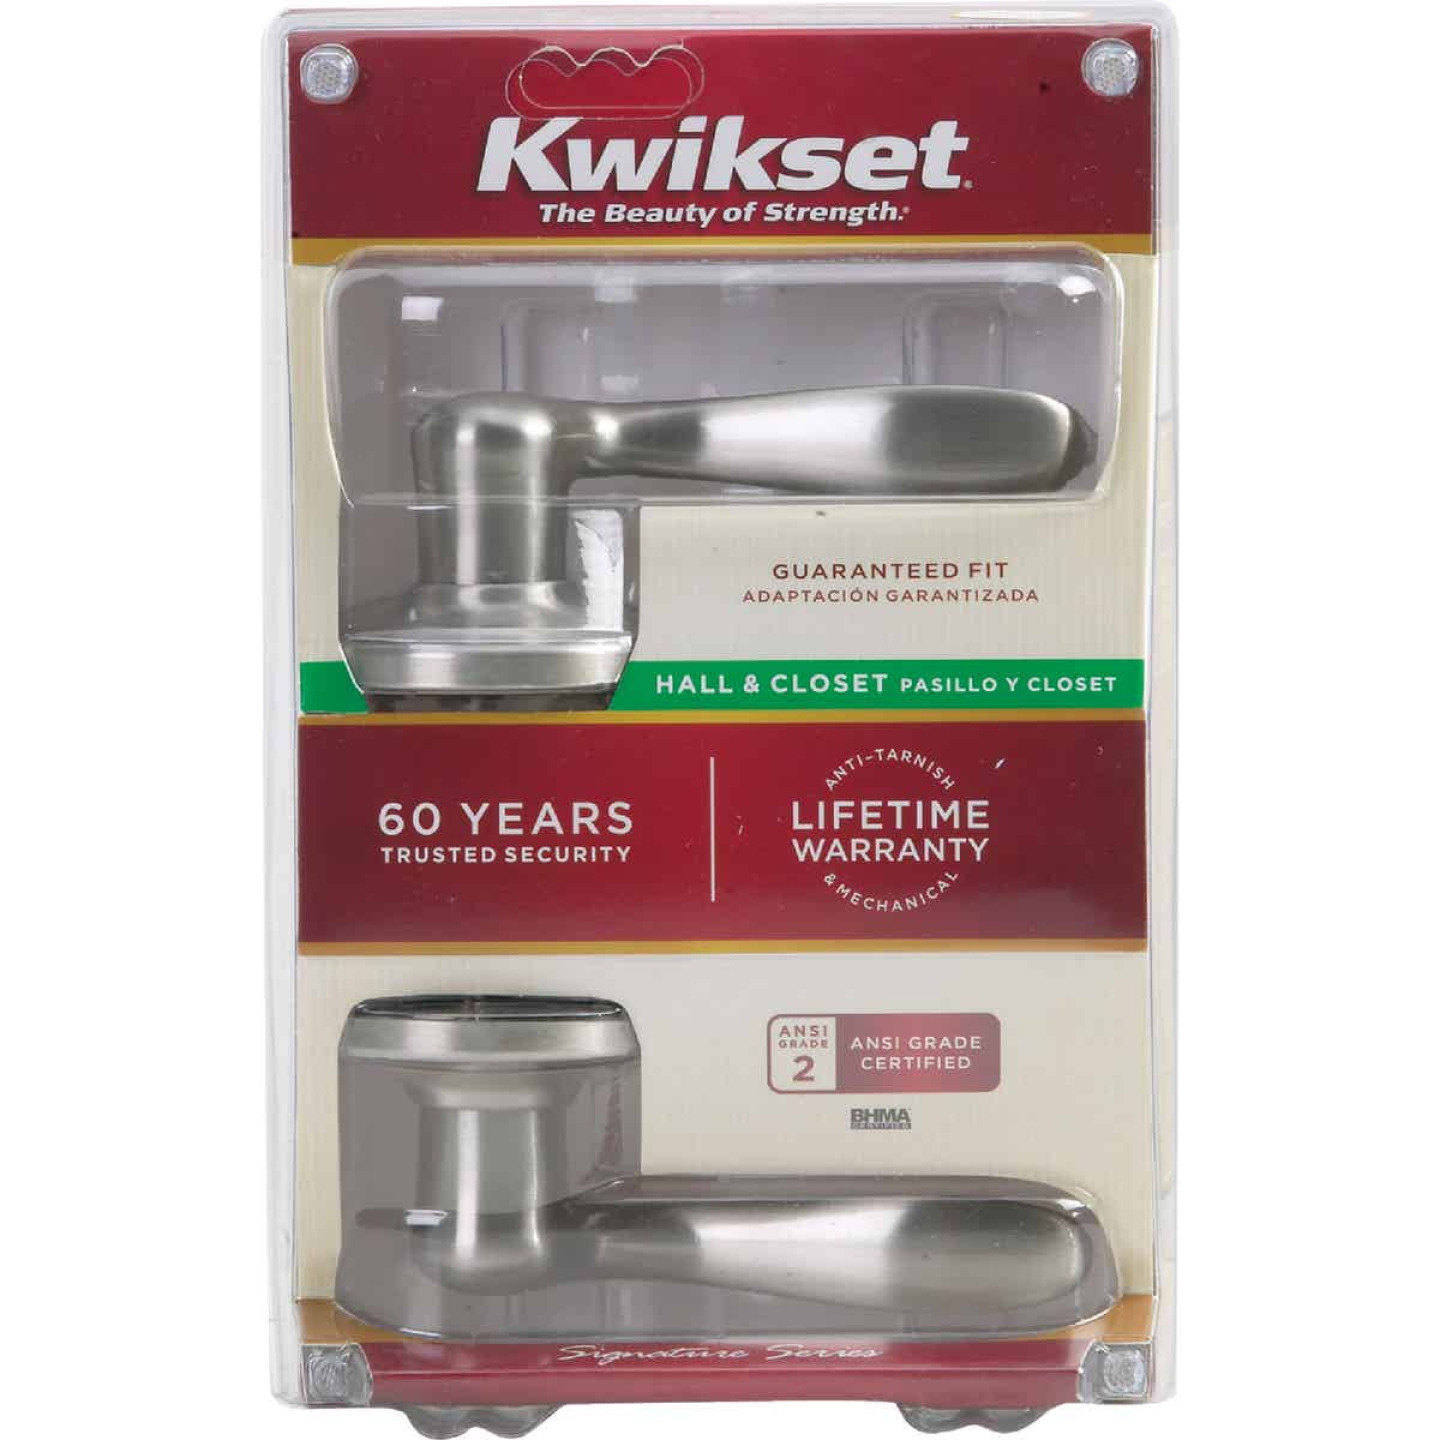 Kwikset Signature Series Satin Nickel Tustin Passage Door Lever Image 4